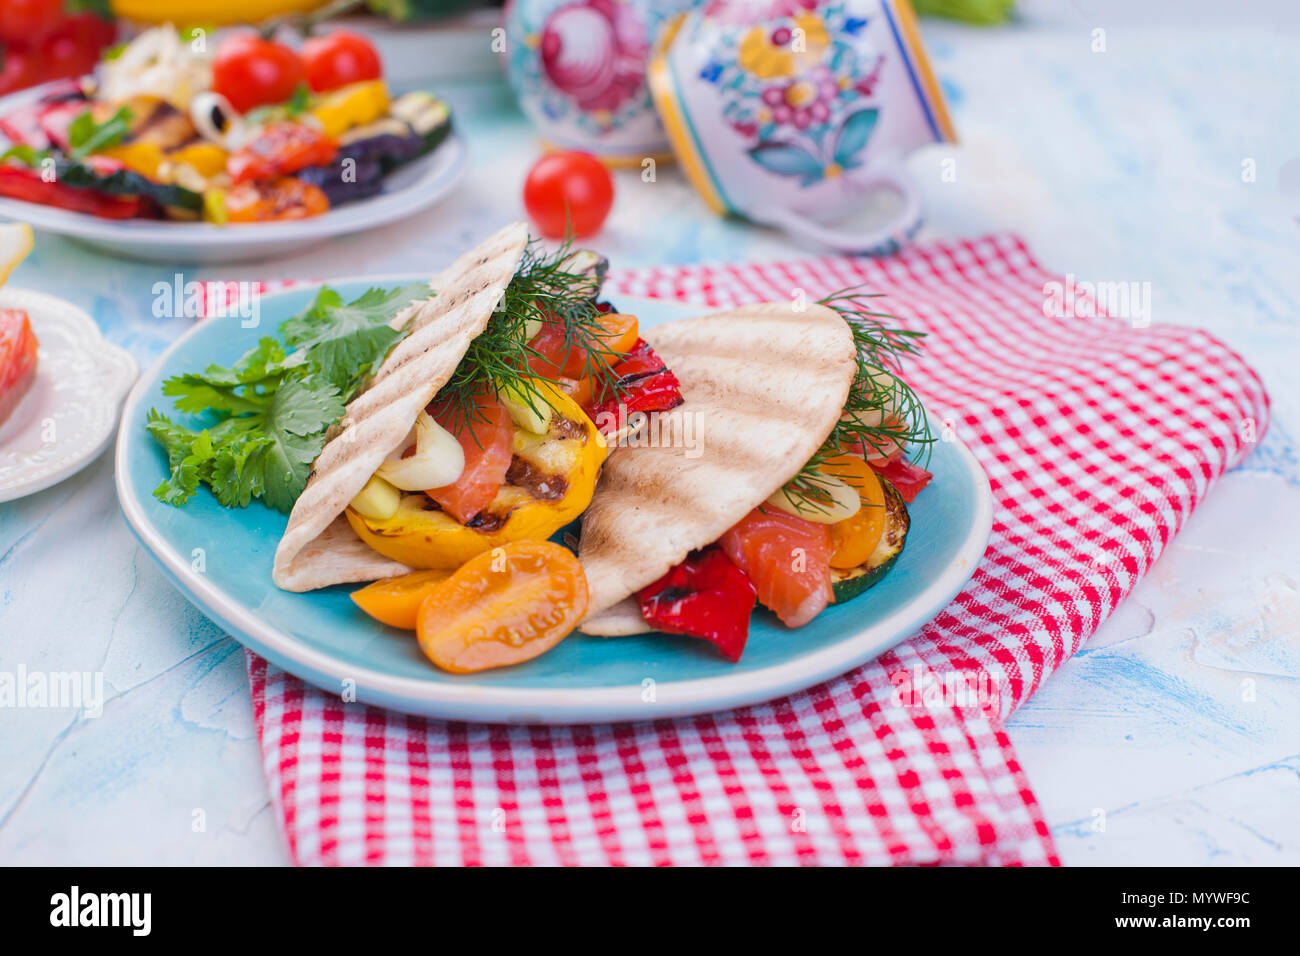 Arabic Menu Stock Photos & Arabic Menu Stock Images - Alamy